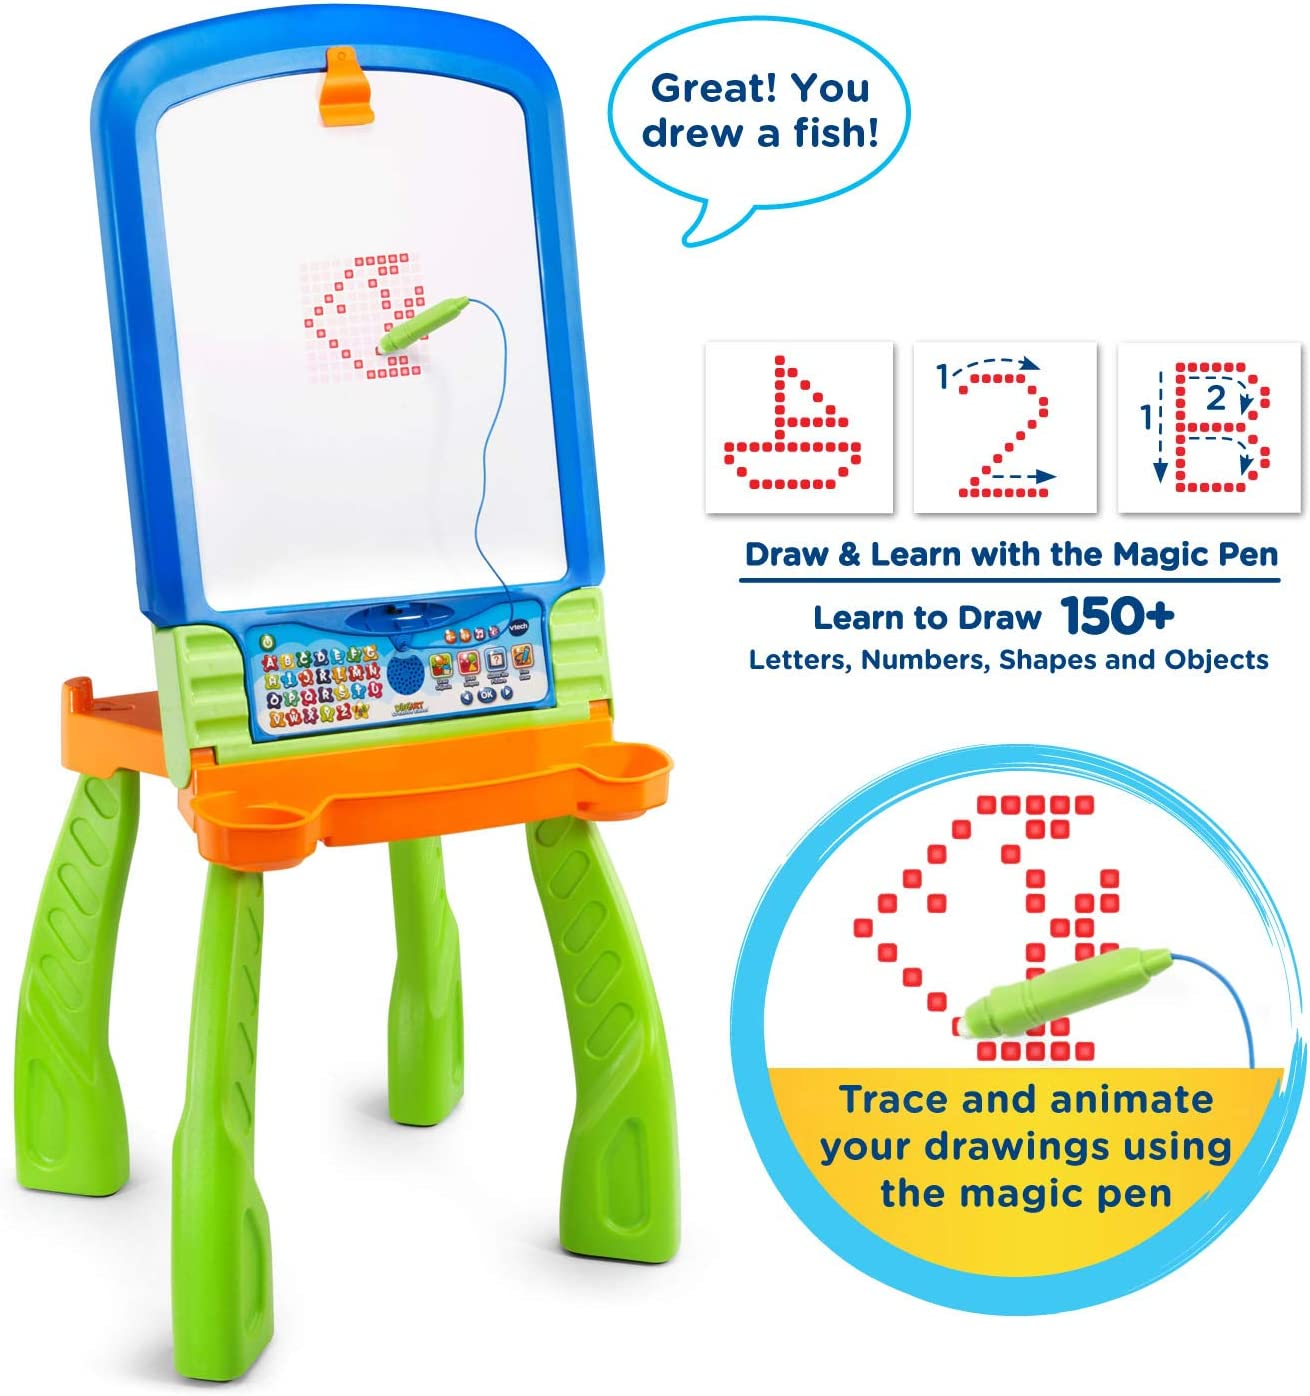 /3/in 1, Vtech Magi Interactive Easel/ French Version